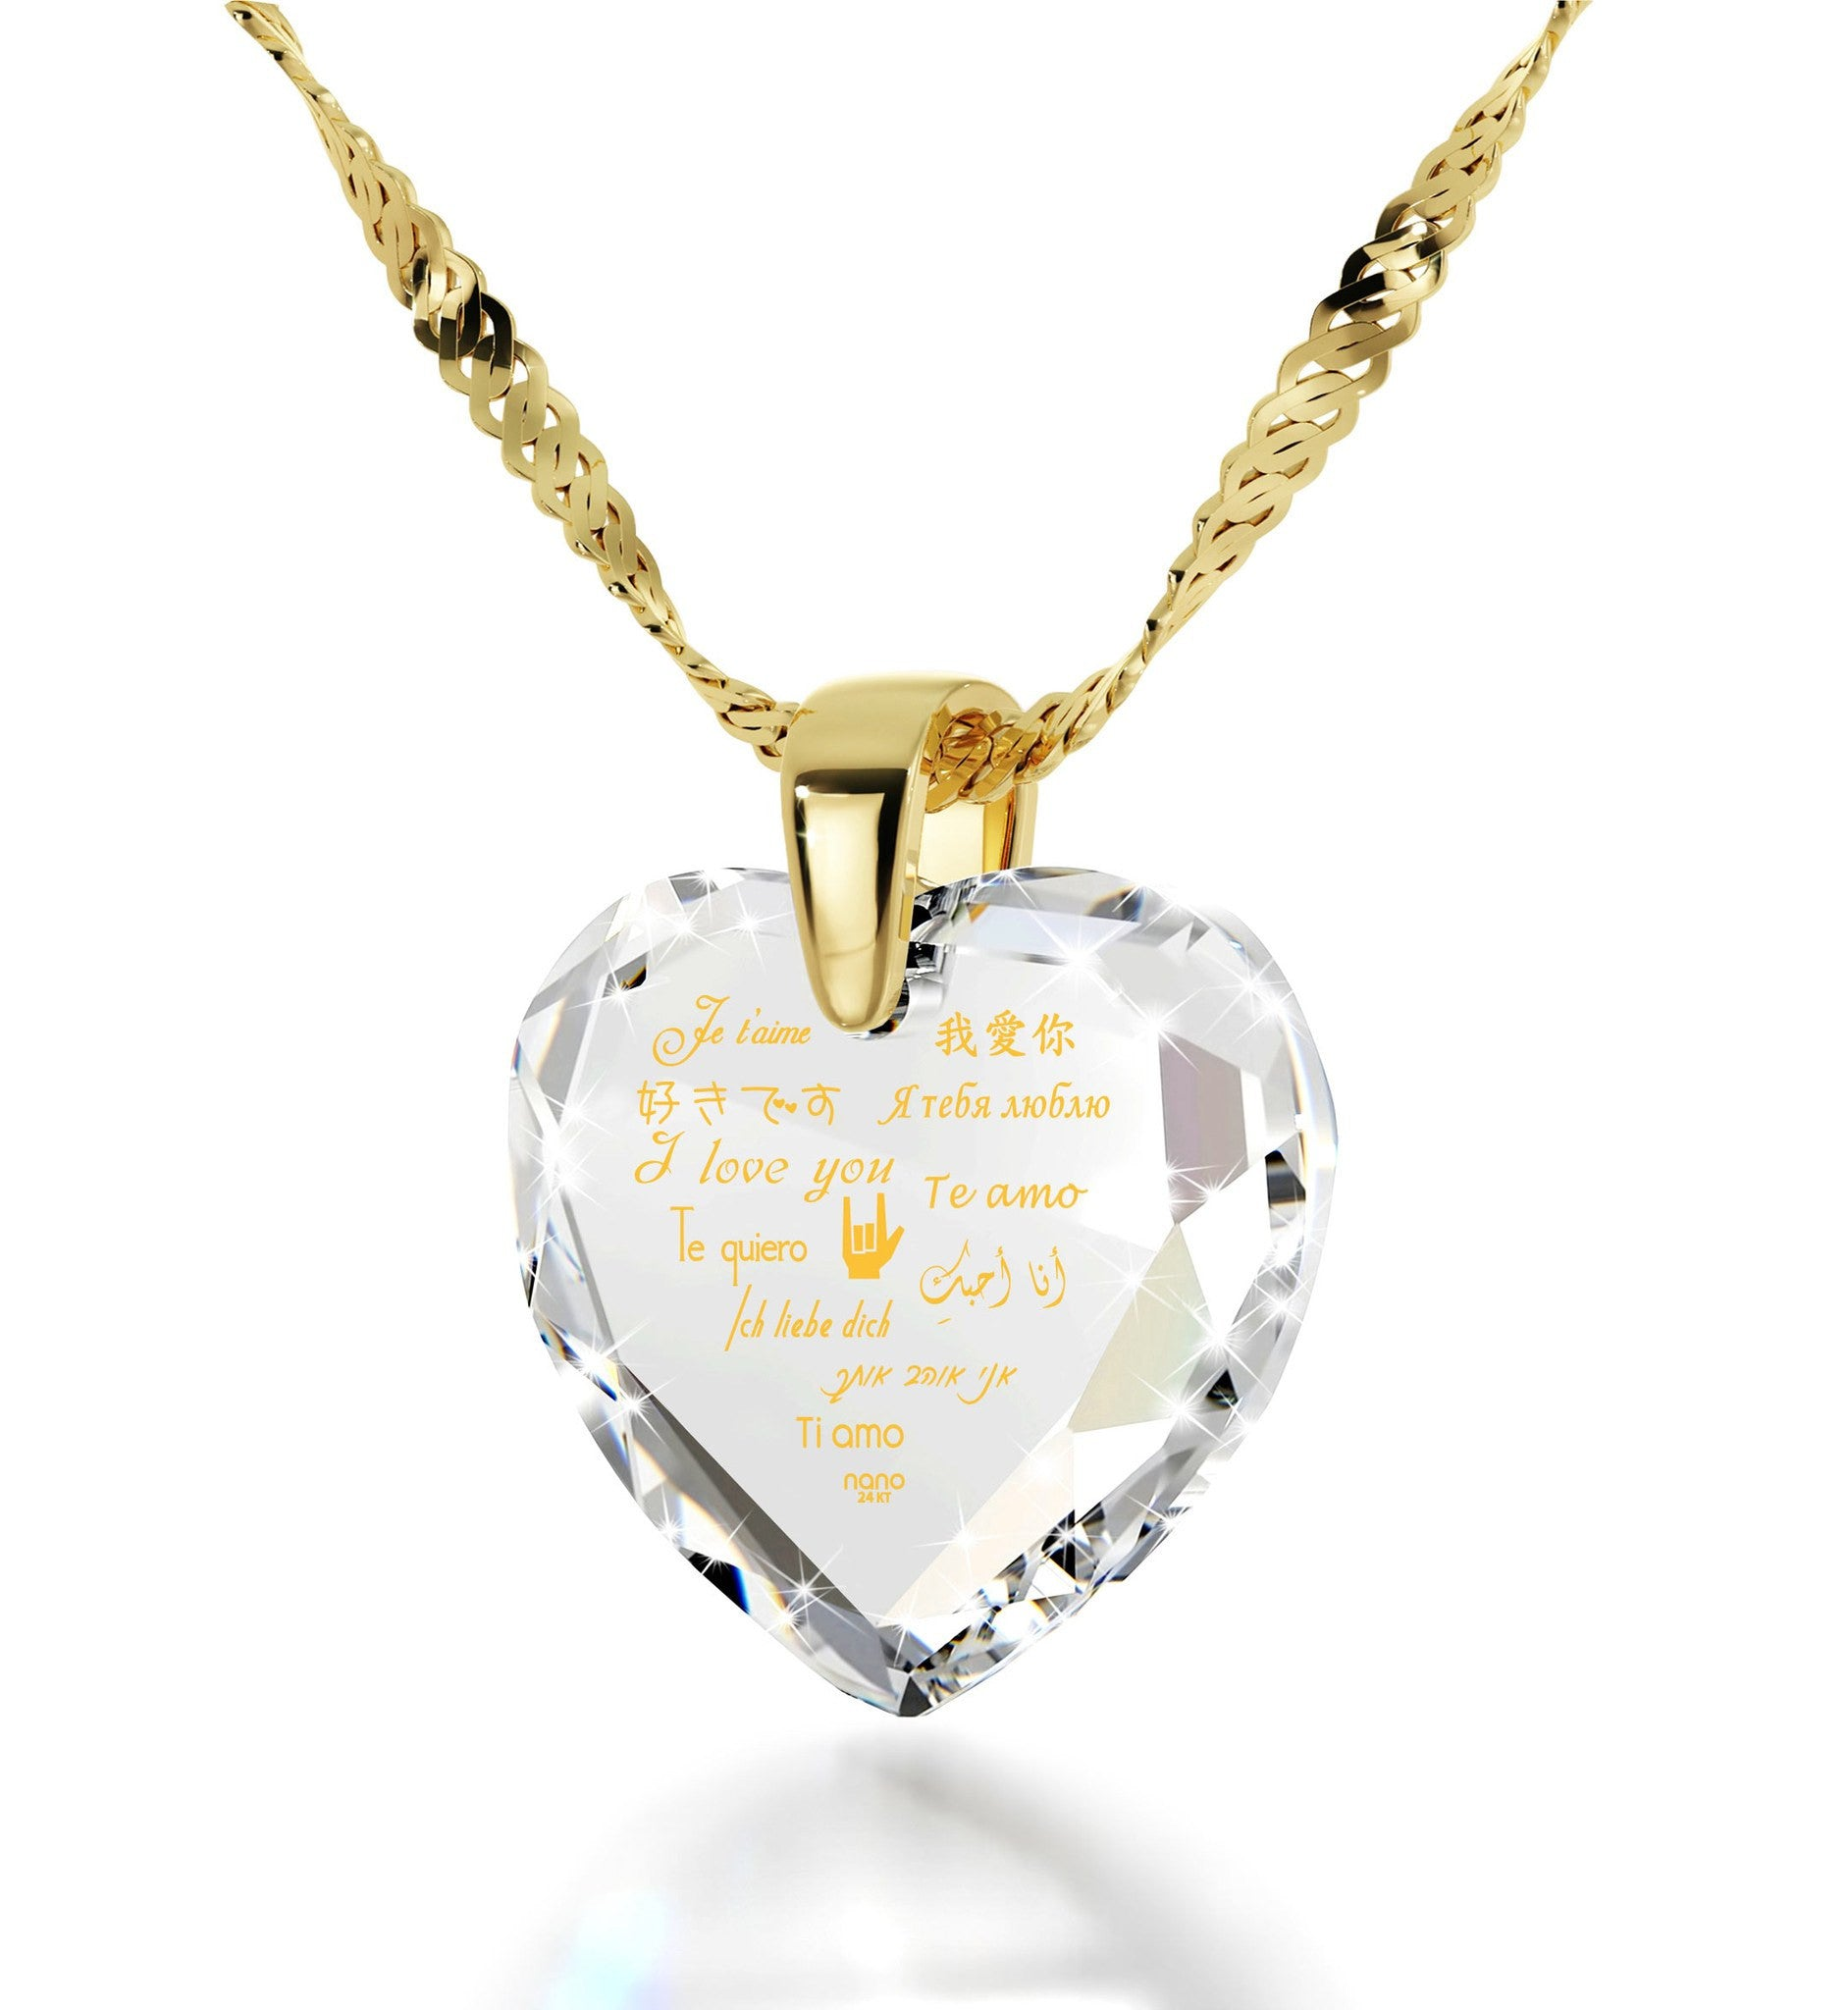 12 Days Of Christmas Gifts For Girlfriend: Need Wife Birthday Ideas? Gift Her A Unique Necklace From